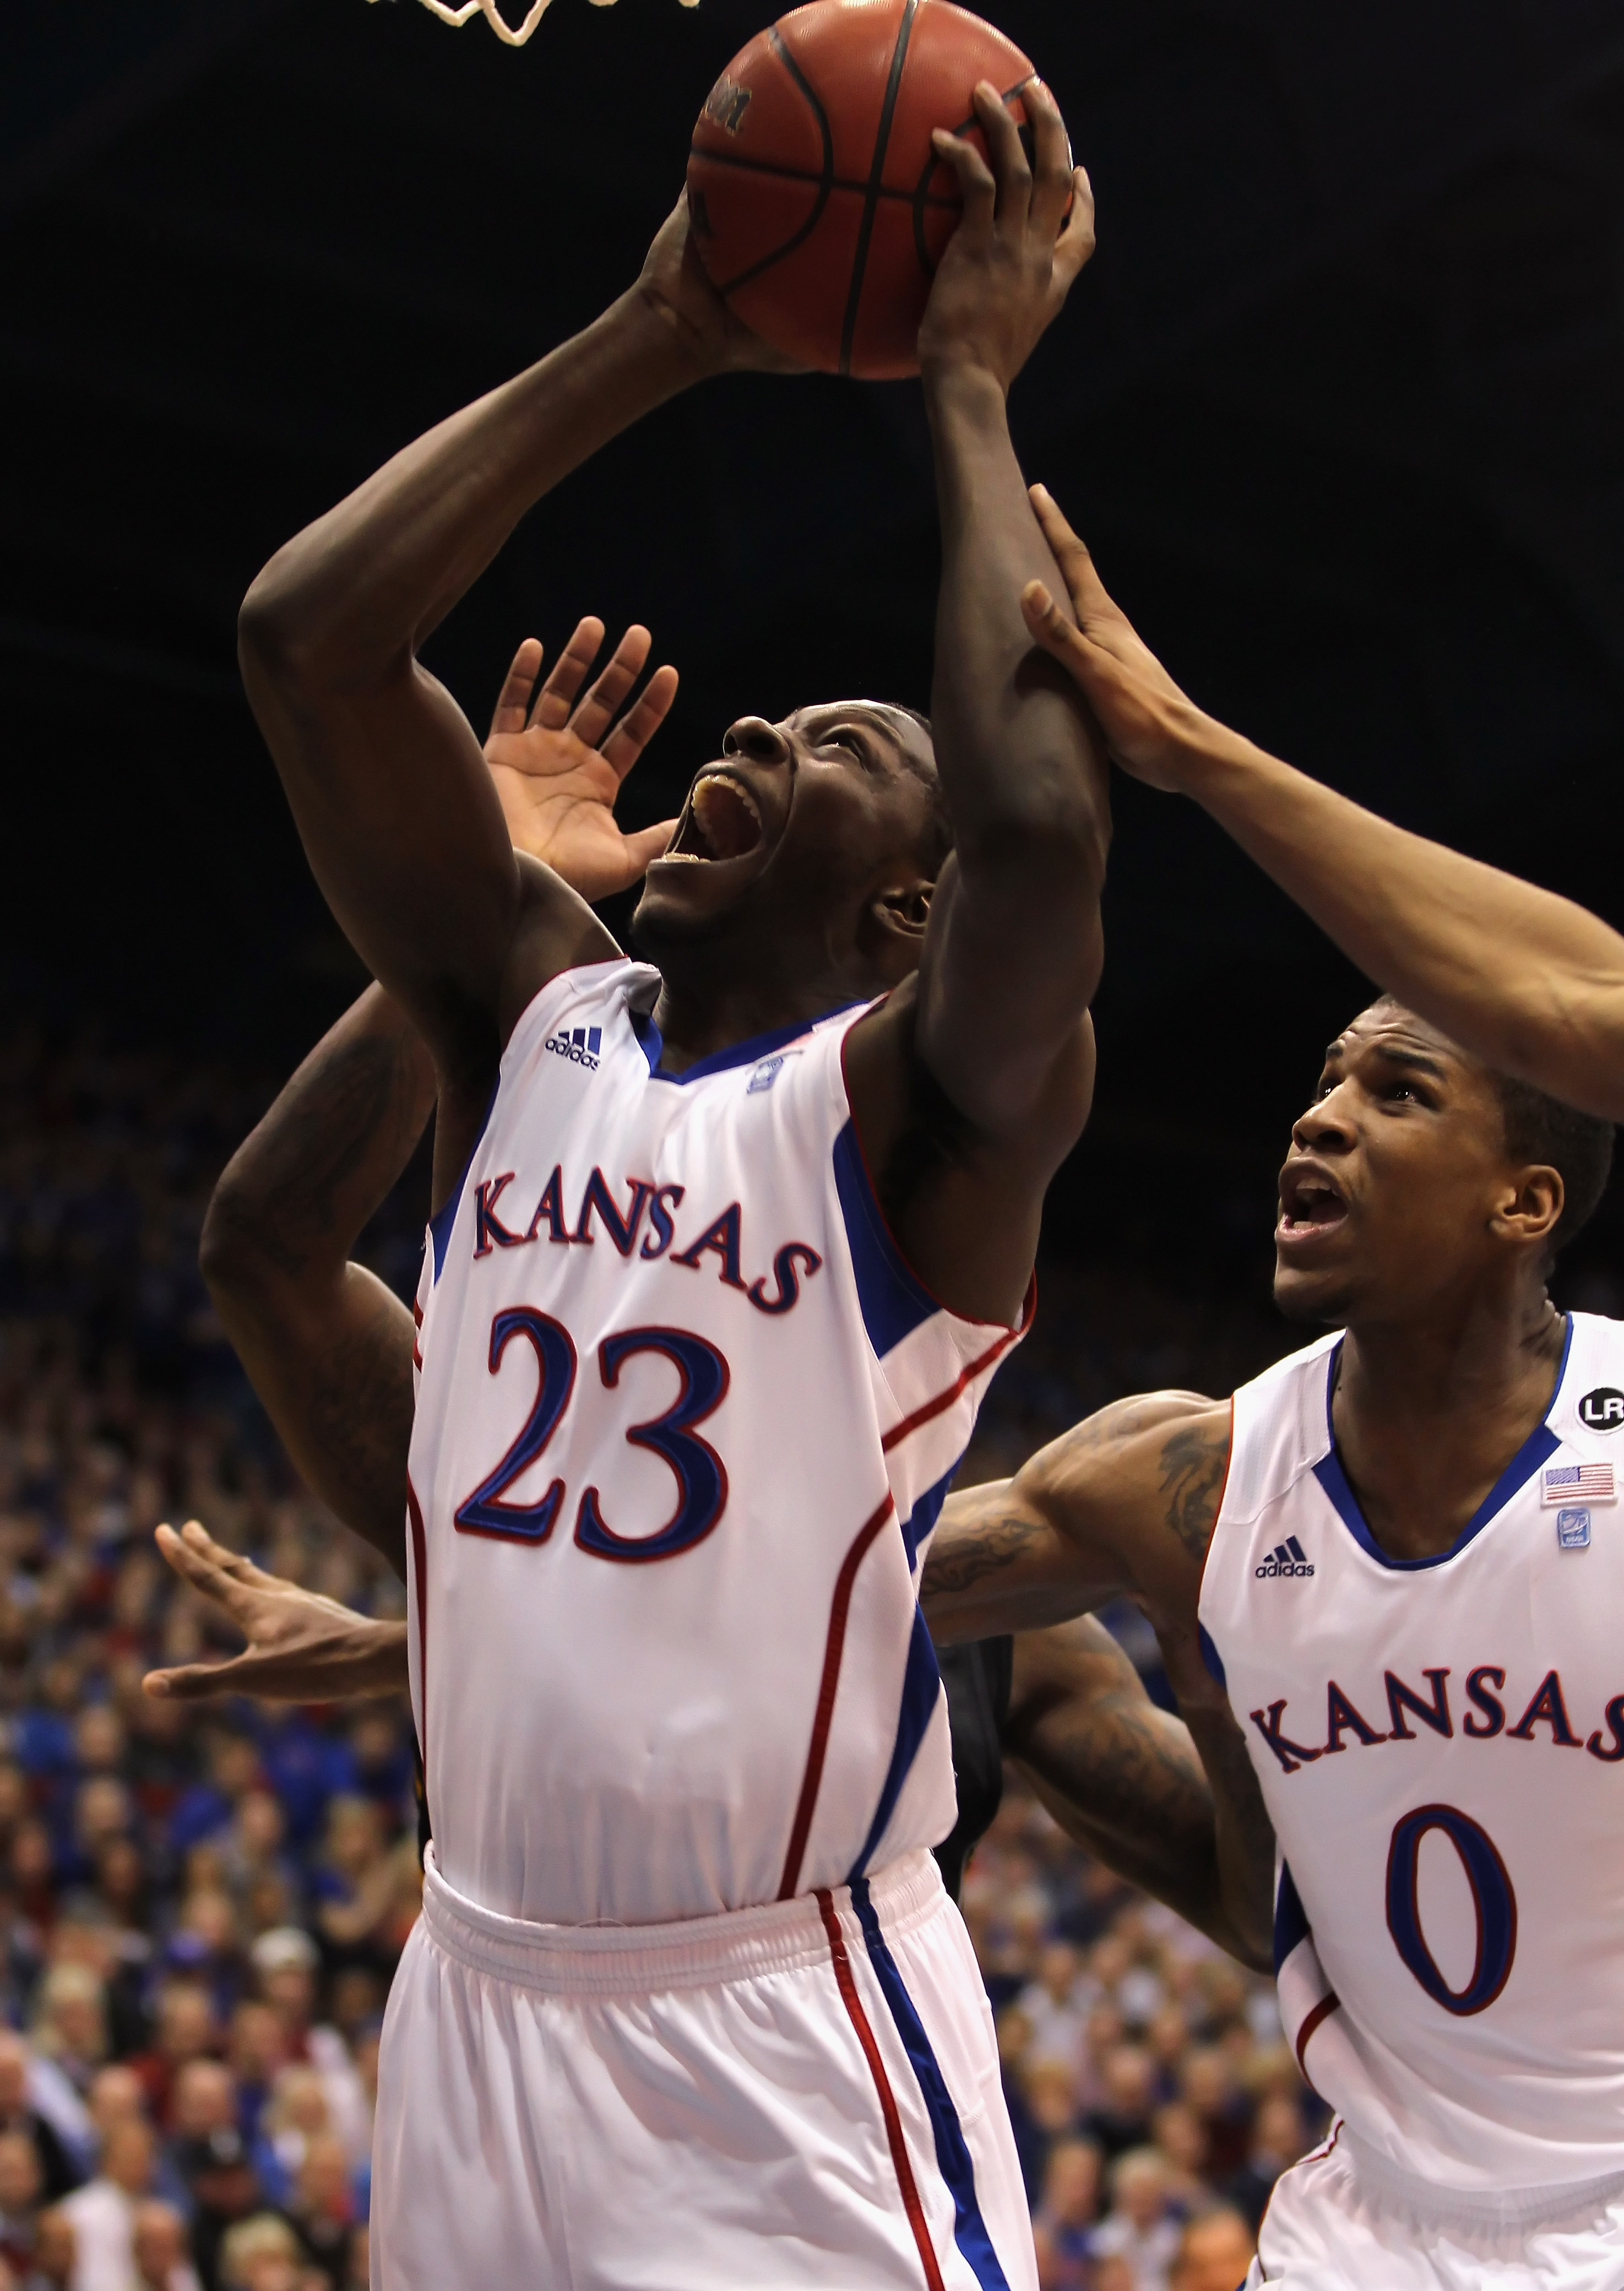 LAWRENCE, KS - FEBRUARY 07:  Mario Little #23 of the Kansas Jayhawks shoots during the game against the Missouri Tigers on February 7, 2011 at Allen Fieldhouse in Lawrence, Kansas.  (Photo by Jamie Squire/Getty Images)